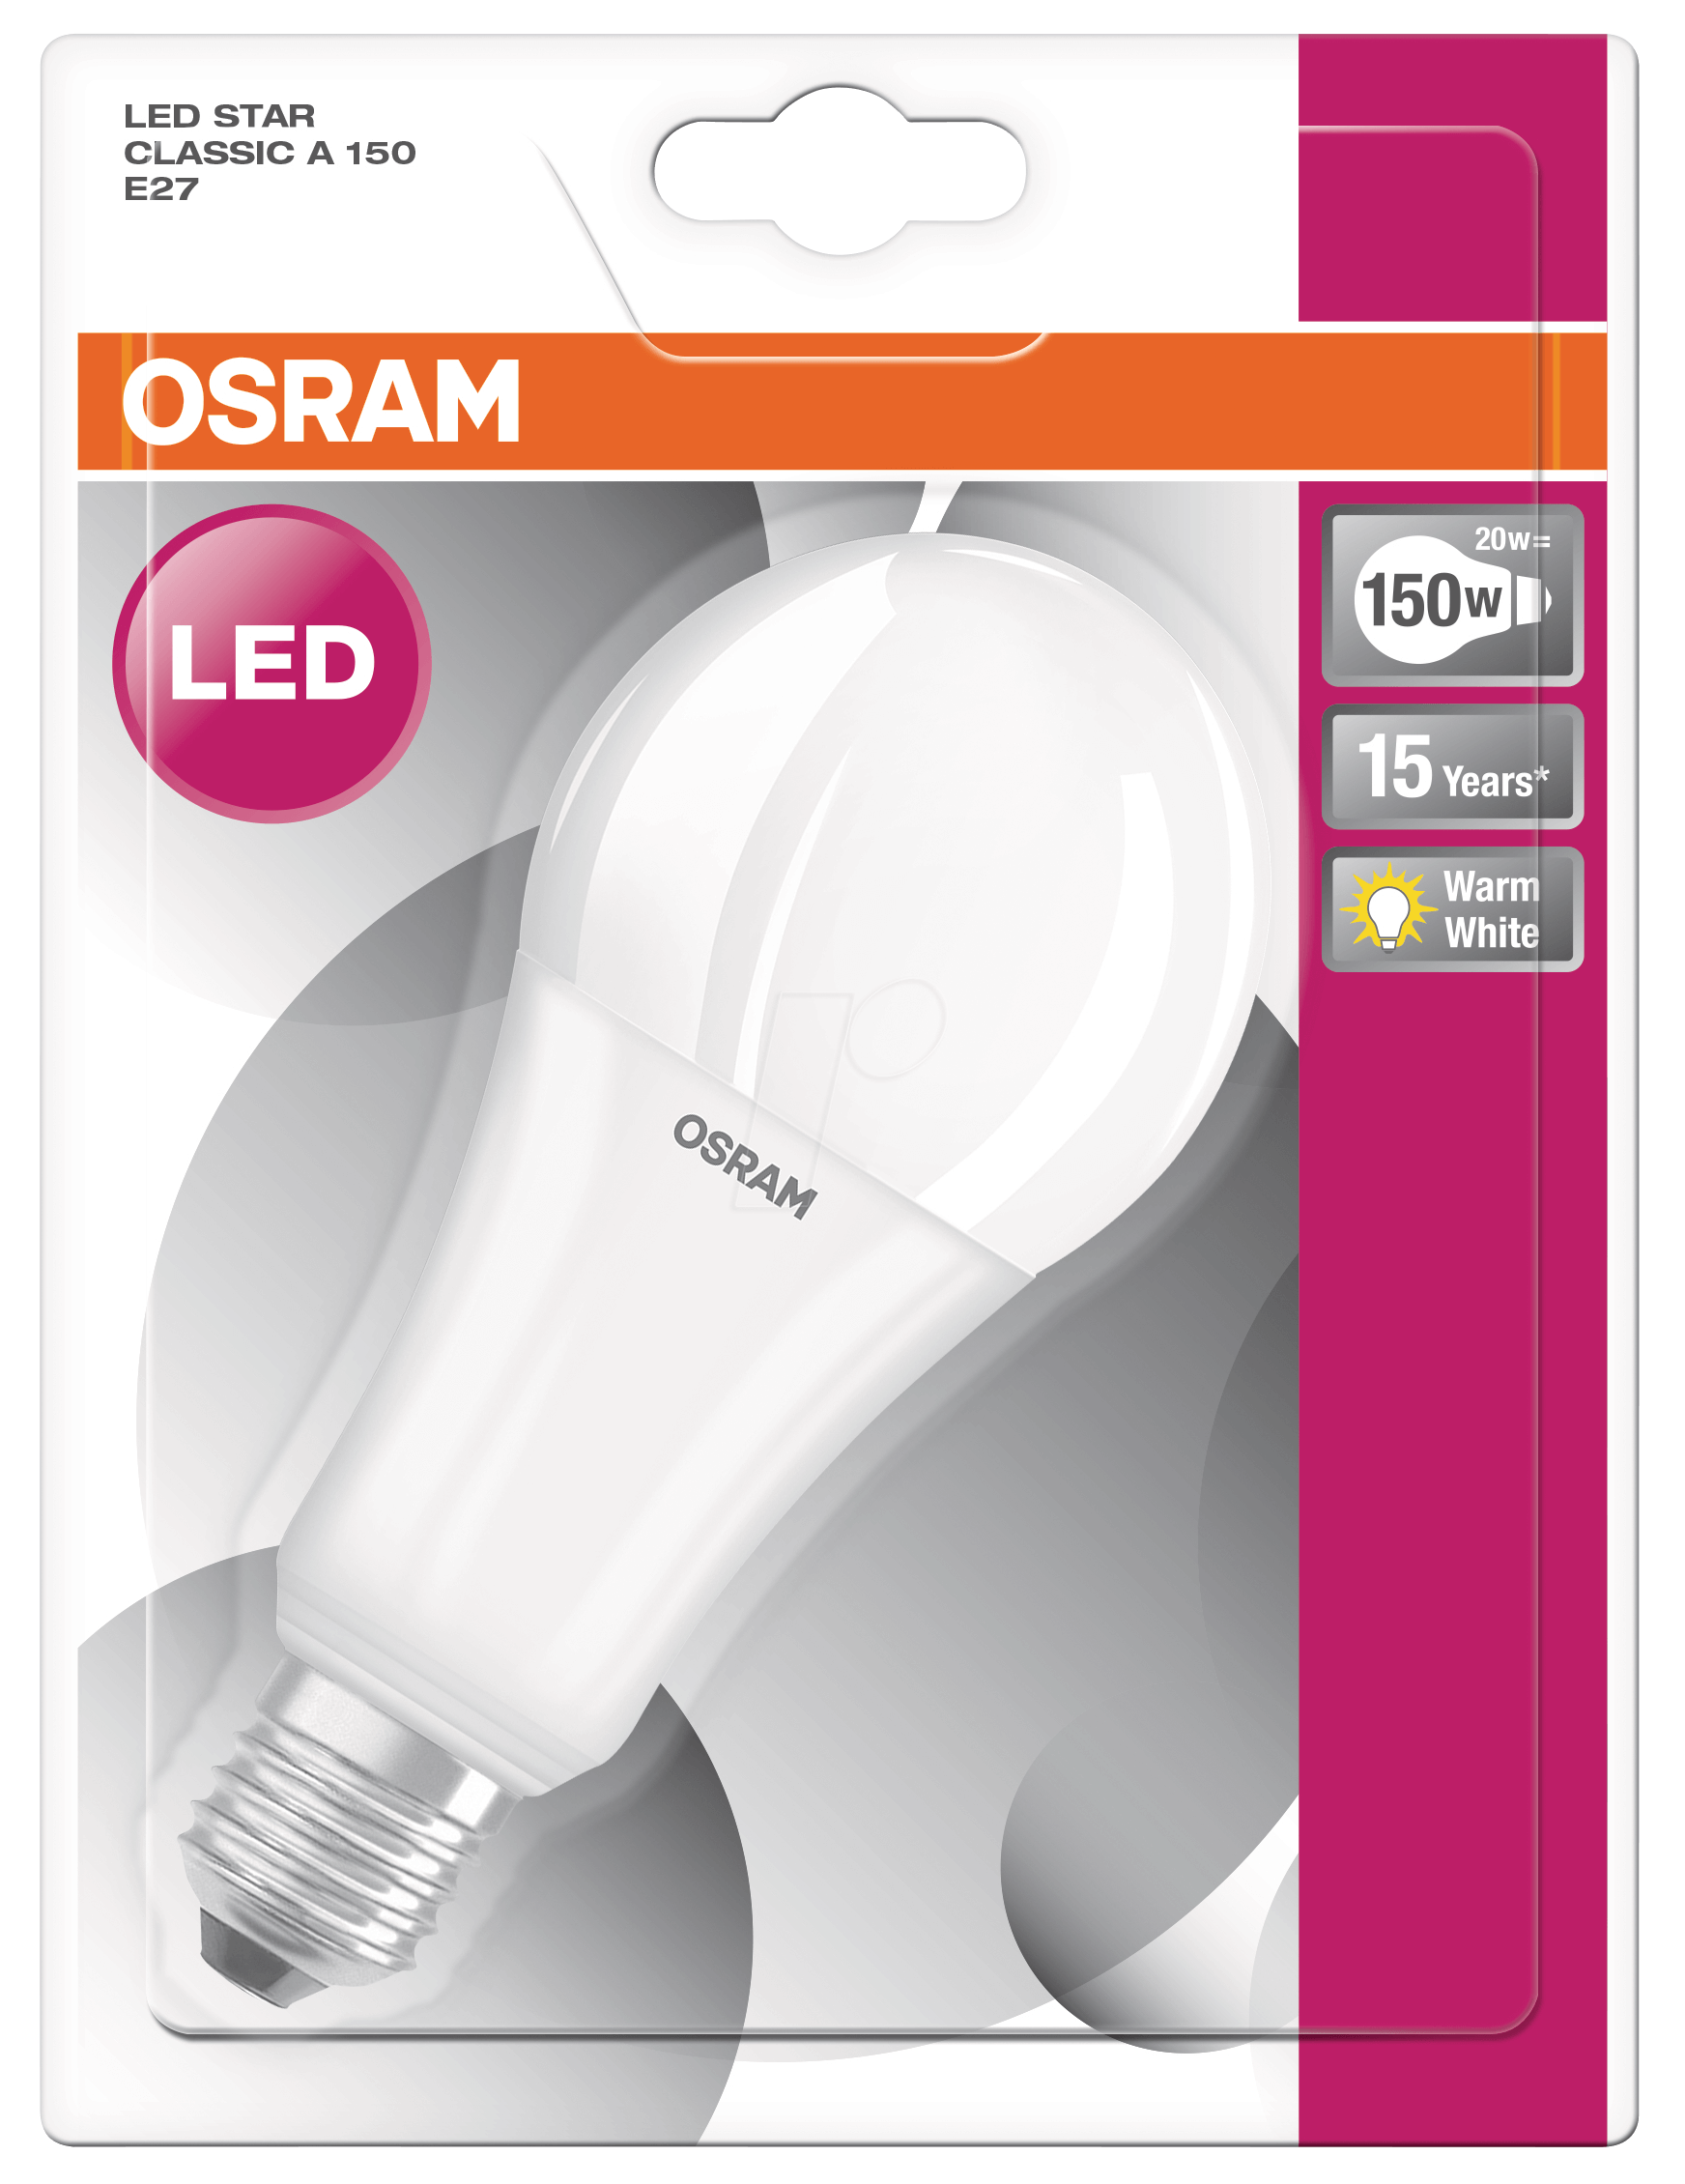 osr 899959118 osram led star cl a 150 20 w e27 at. Black Bedroom Furniture Sets. Home Design Ideas